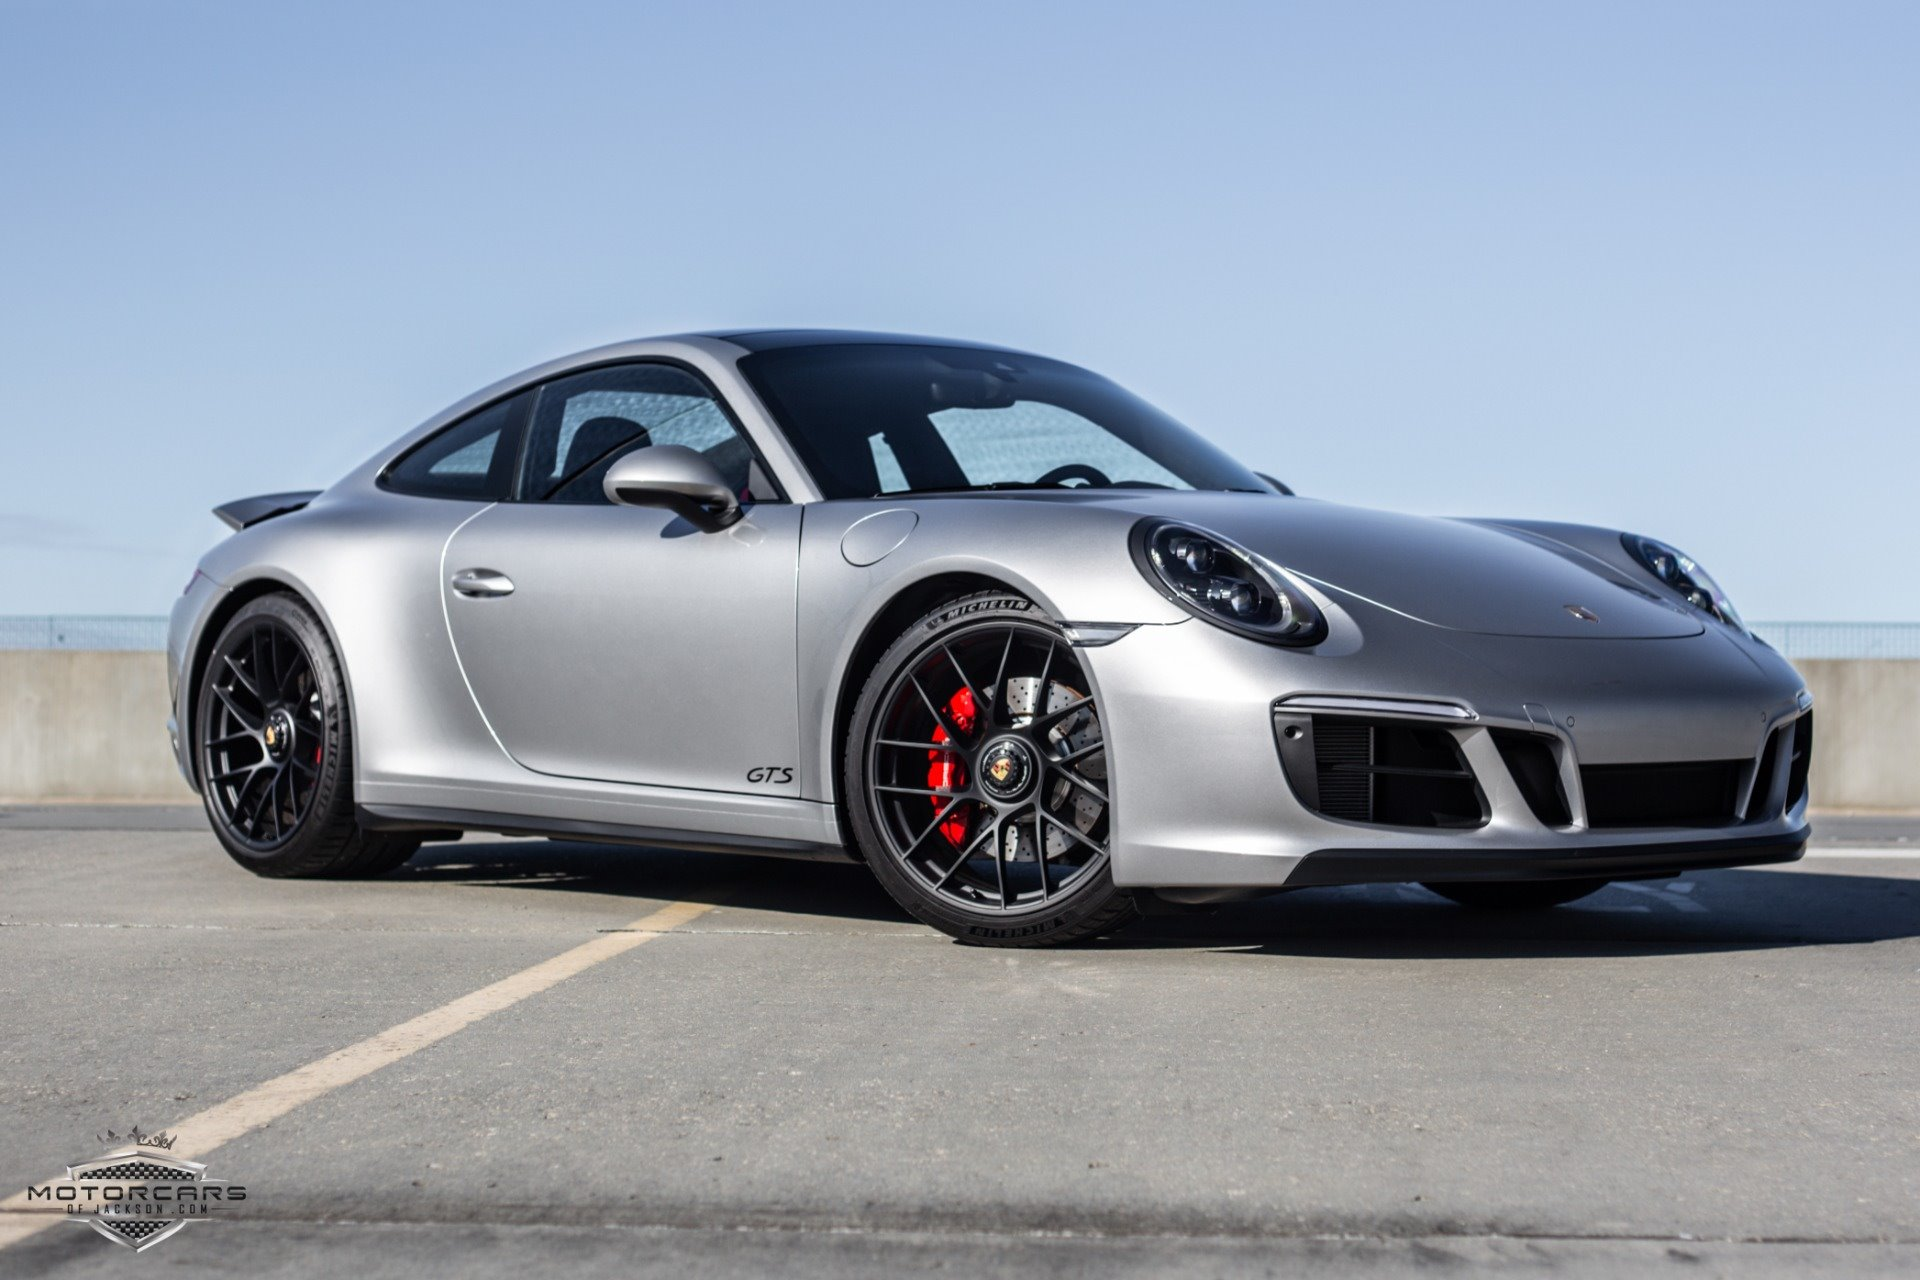 New 2019 Porsche-911 Carrera T 911 Carrera T for sale $102,100 at M and V Leasing in Brooklyn NY 11223 1